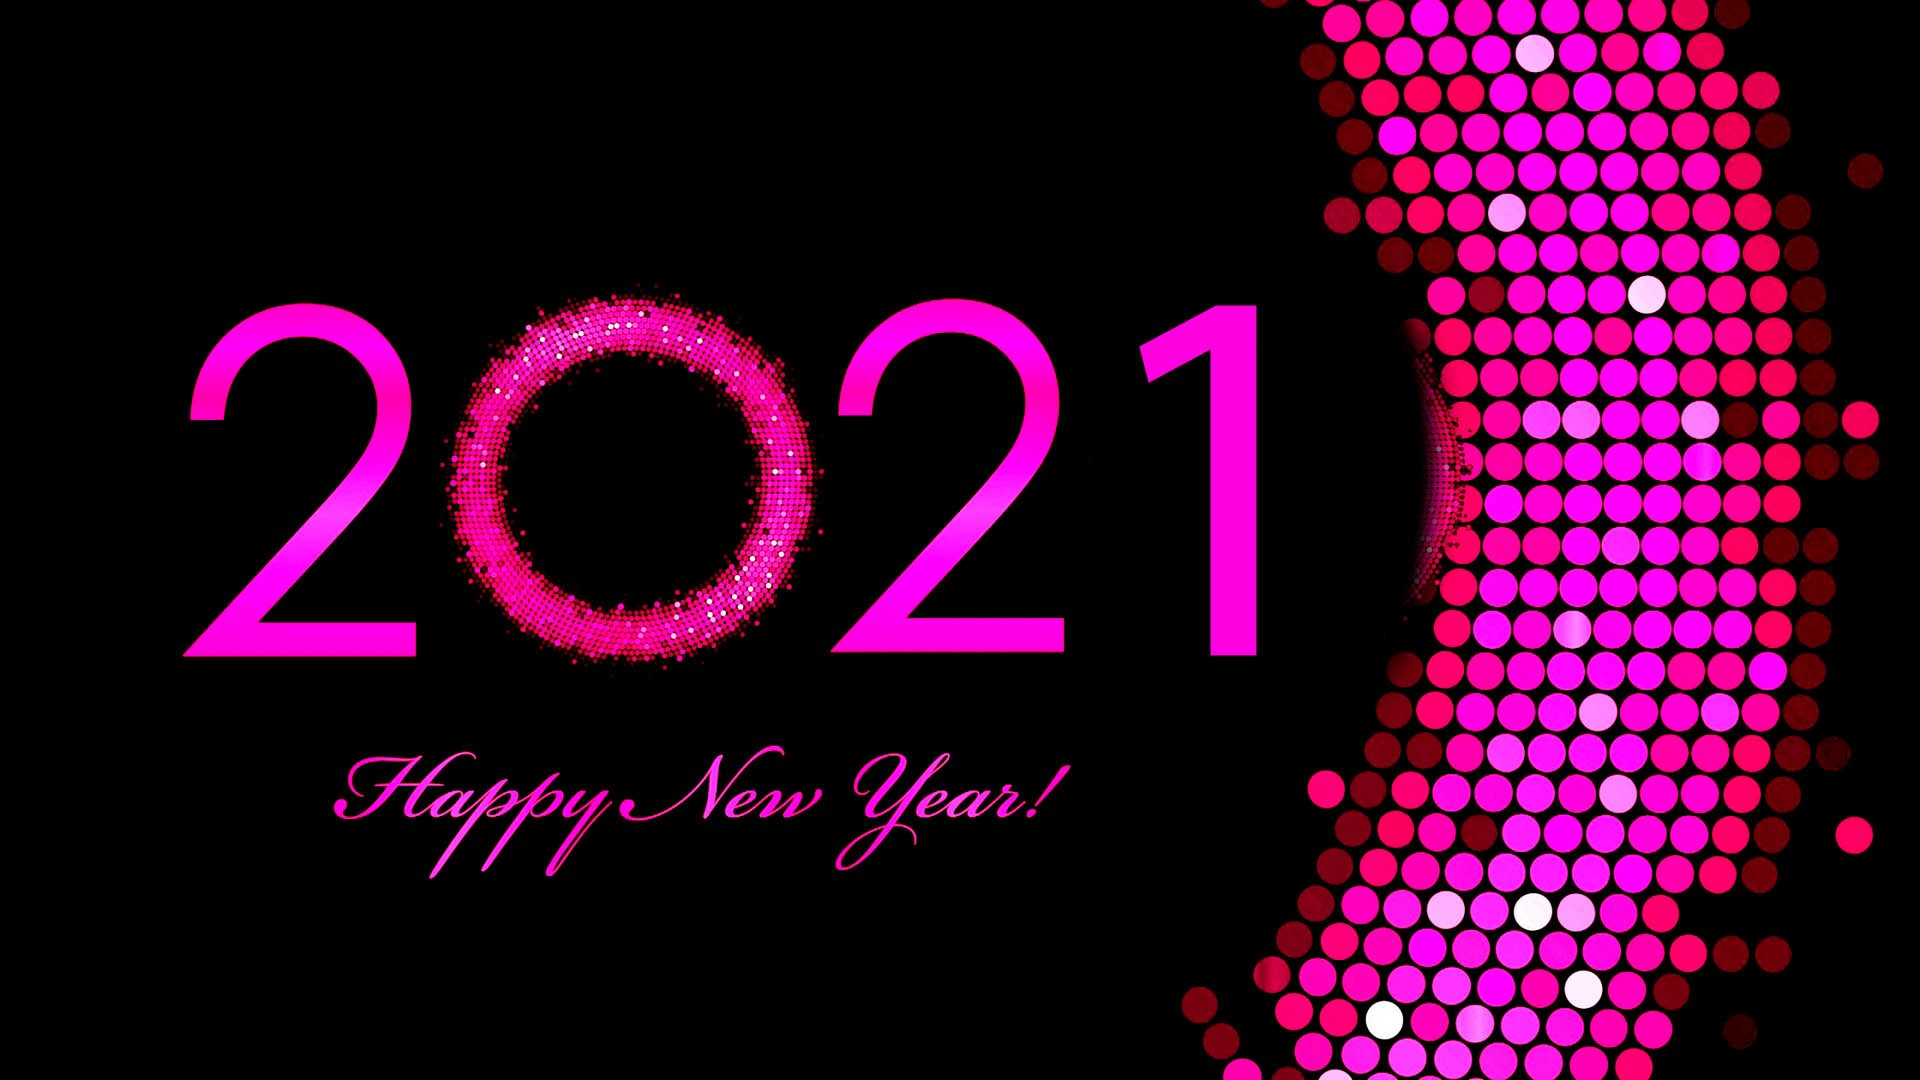 New Year 2021 Wallpaper theme